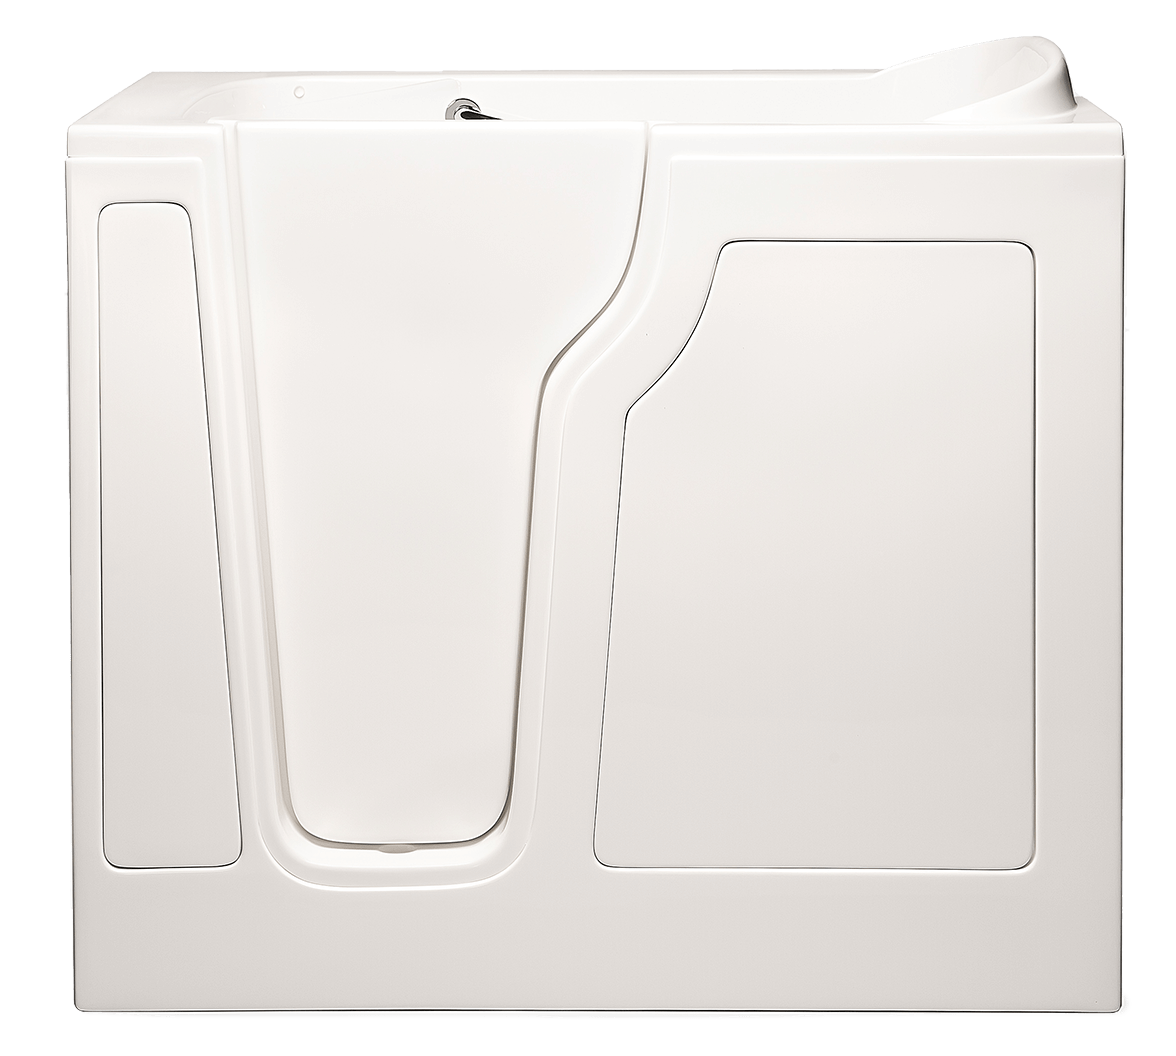 CARE 2848S Walk-in Tub from American Tubs